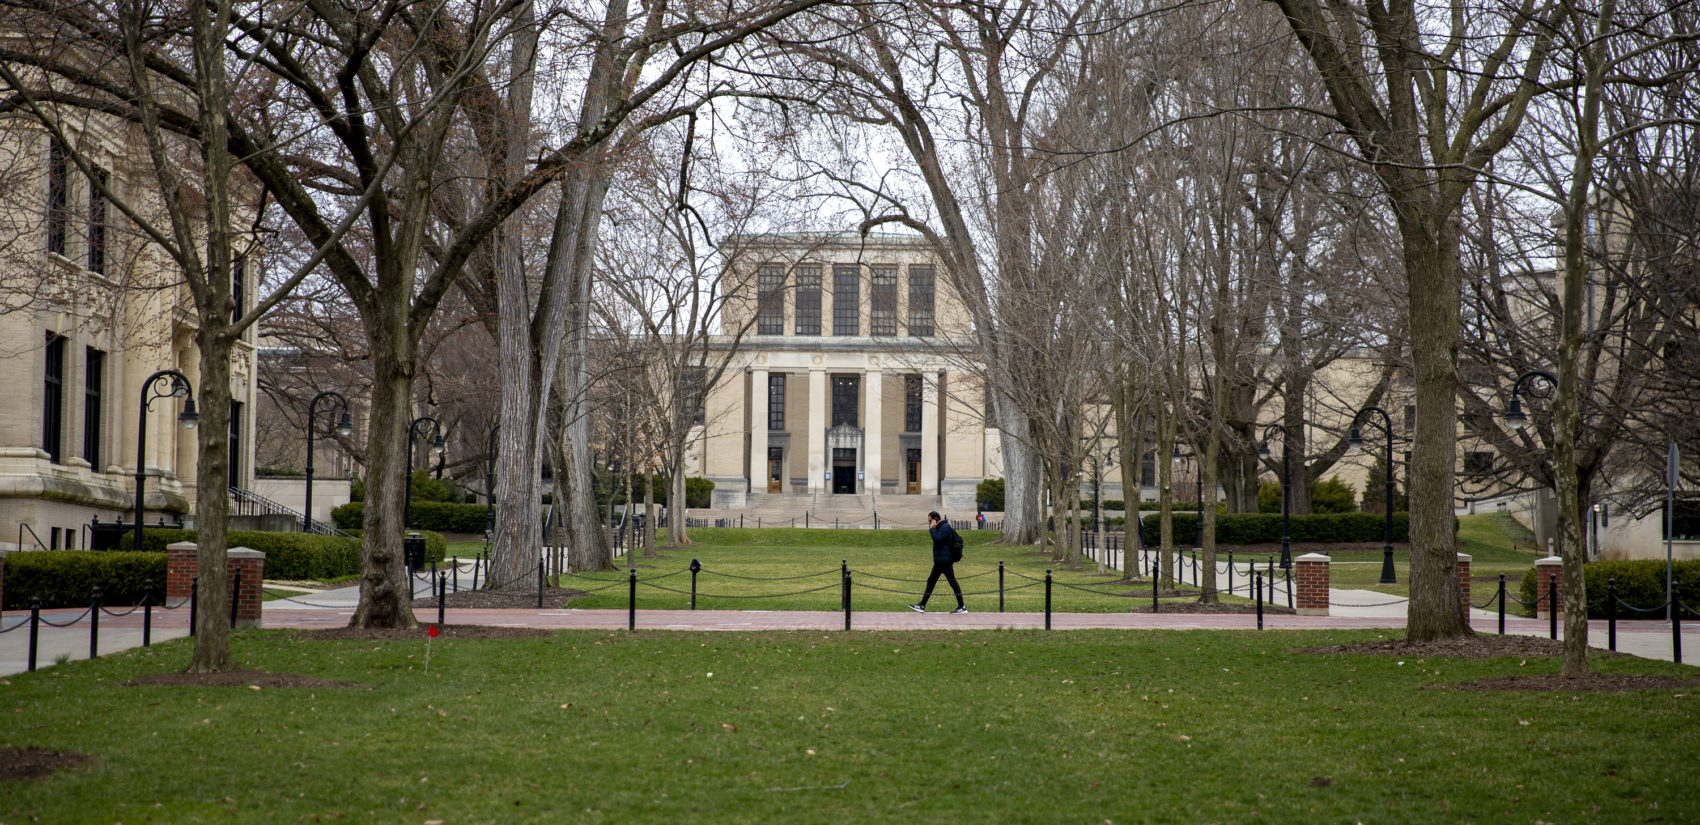 A student walks alone at Penn State's University Park campus, where coronavirus has suspended in-person classes. (Min Xian / WPSU)